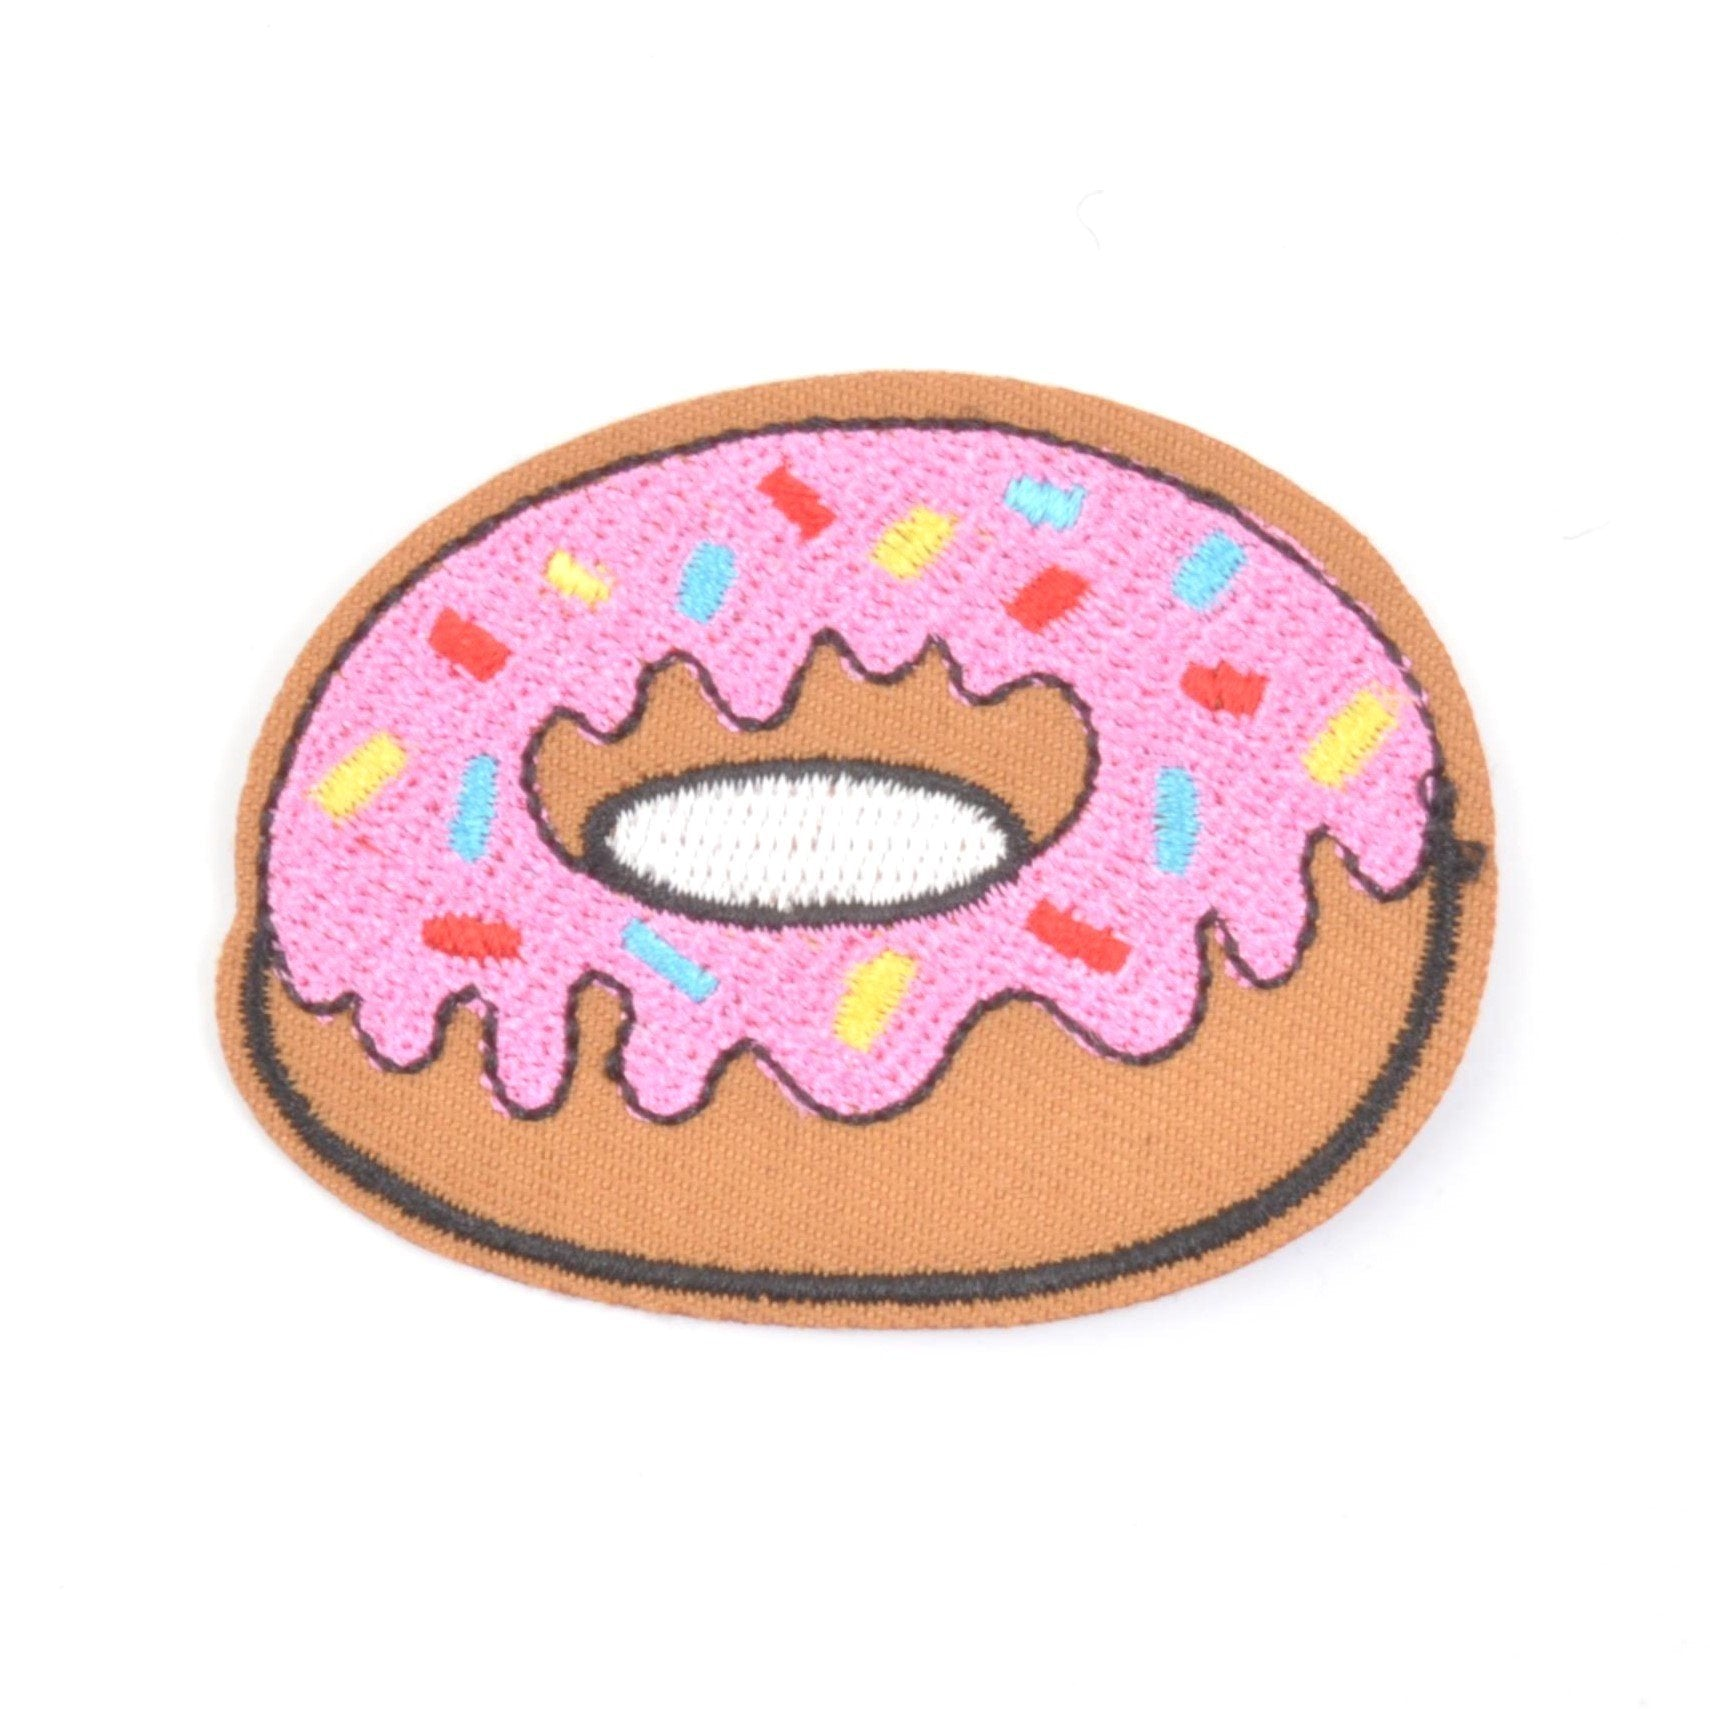 Pink Sprinkles Donut Iron On Patch - Minimum Mouse